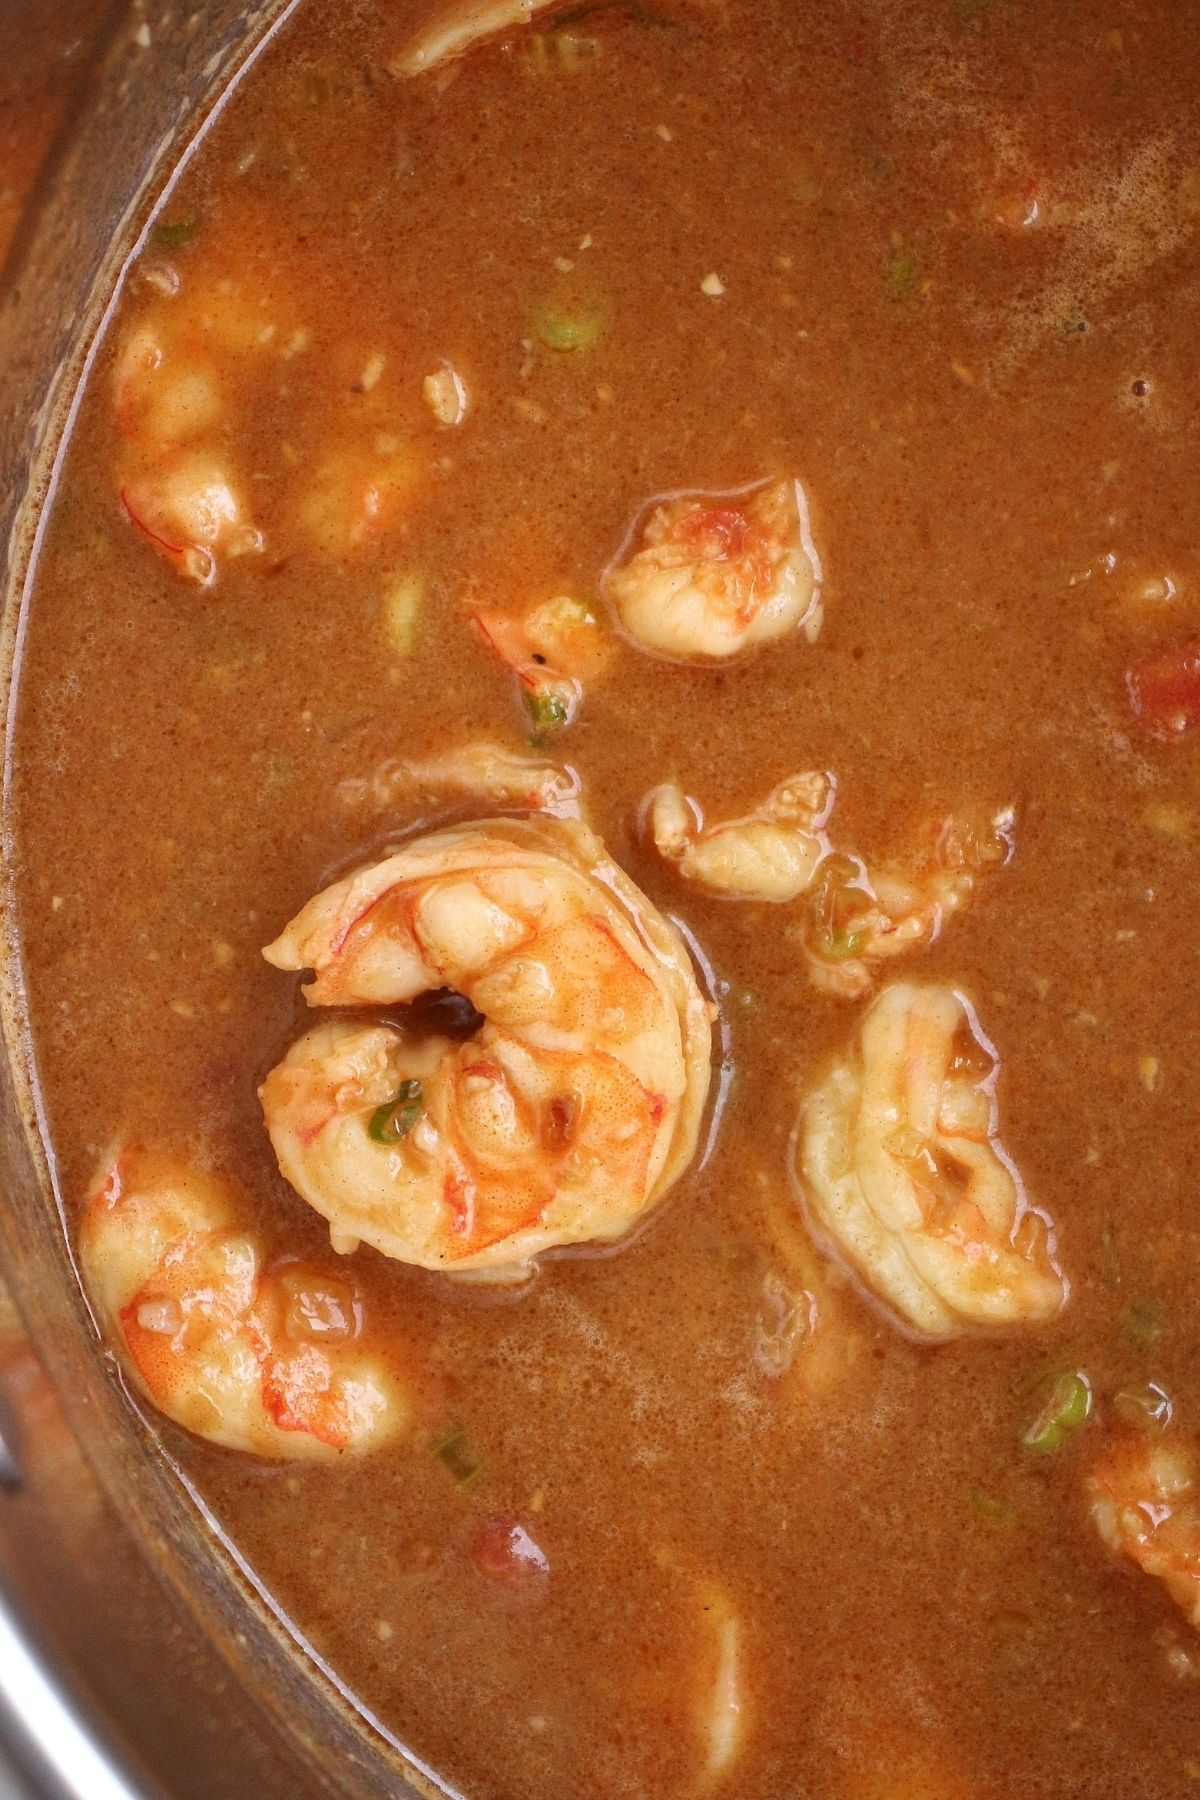 overhead view of a pot of shrimp in a thick creamy stew